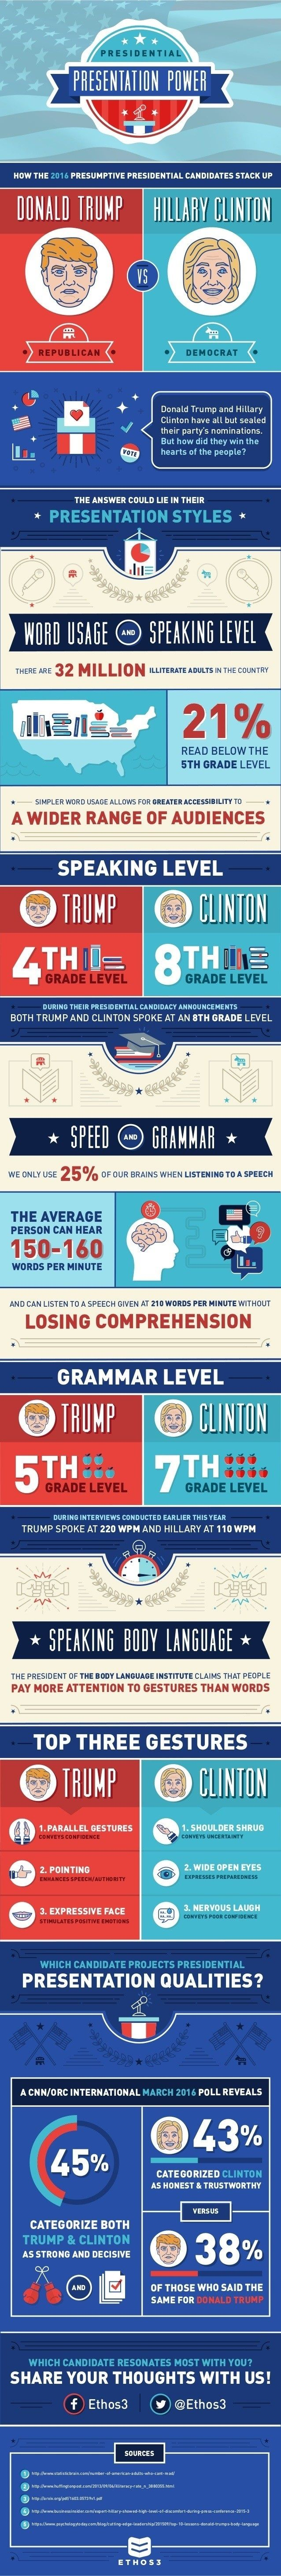 Career Management - Presentations are about much more than words said. They're about word choice, delivery, body language, hand gestures, and much more. So how do the presentation skills of Donald Trump and...